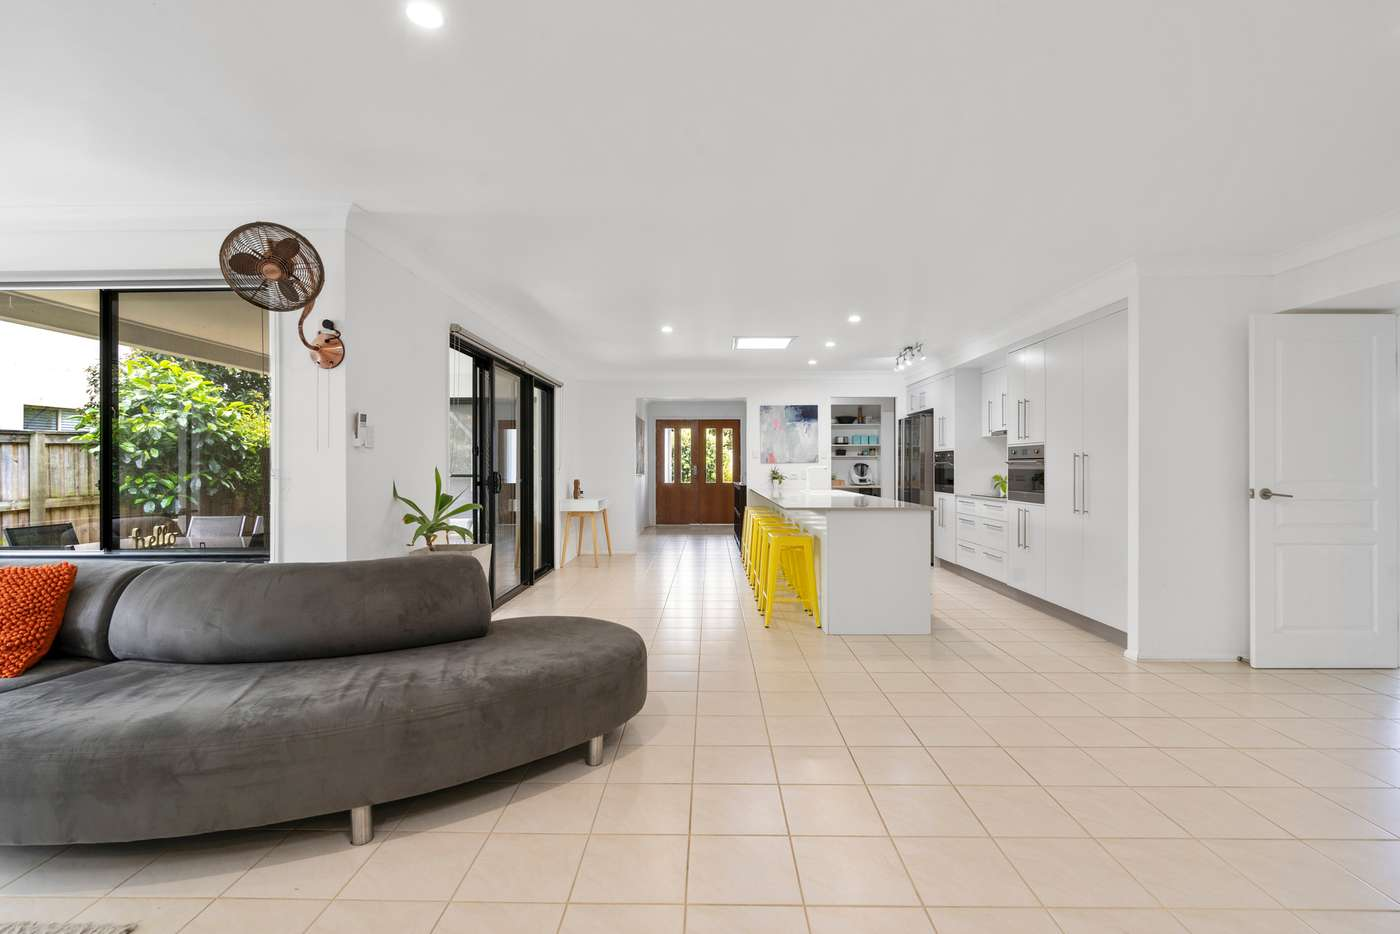 Main view of Homely house listing, 11 Riviera Crescent, Peregian Springs QLD 4573